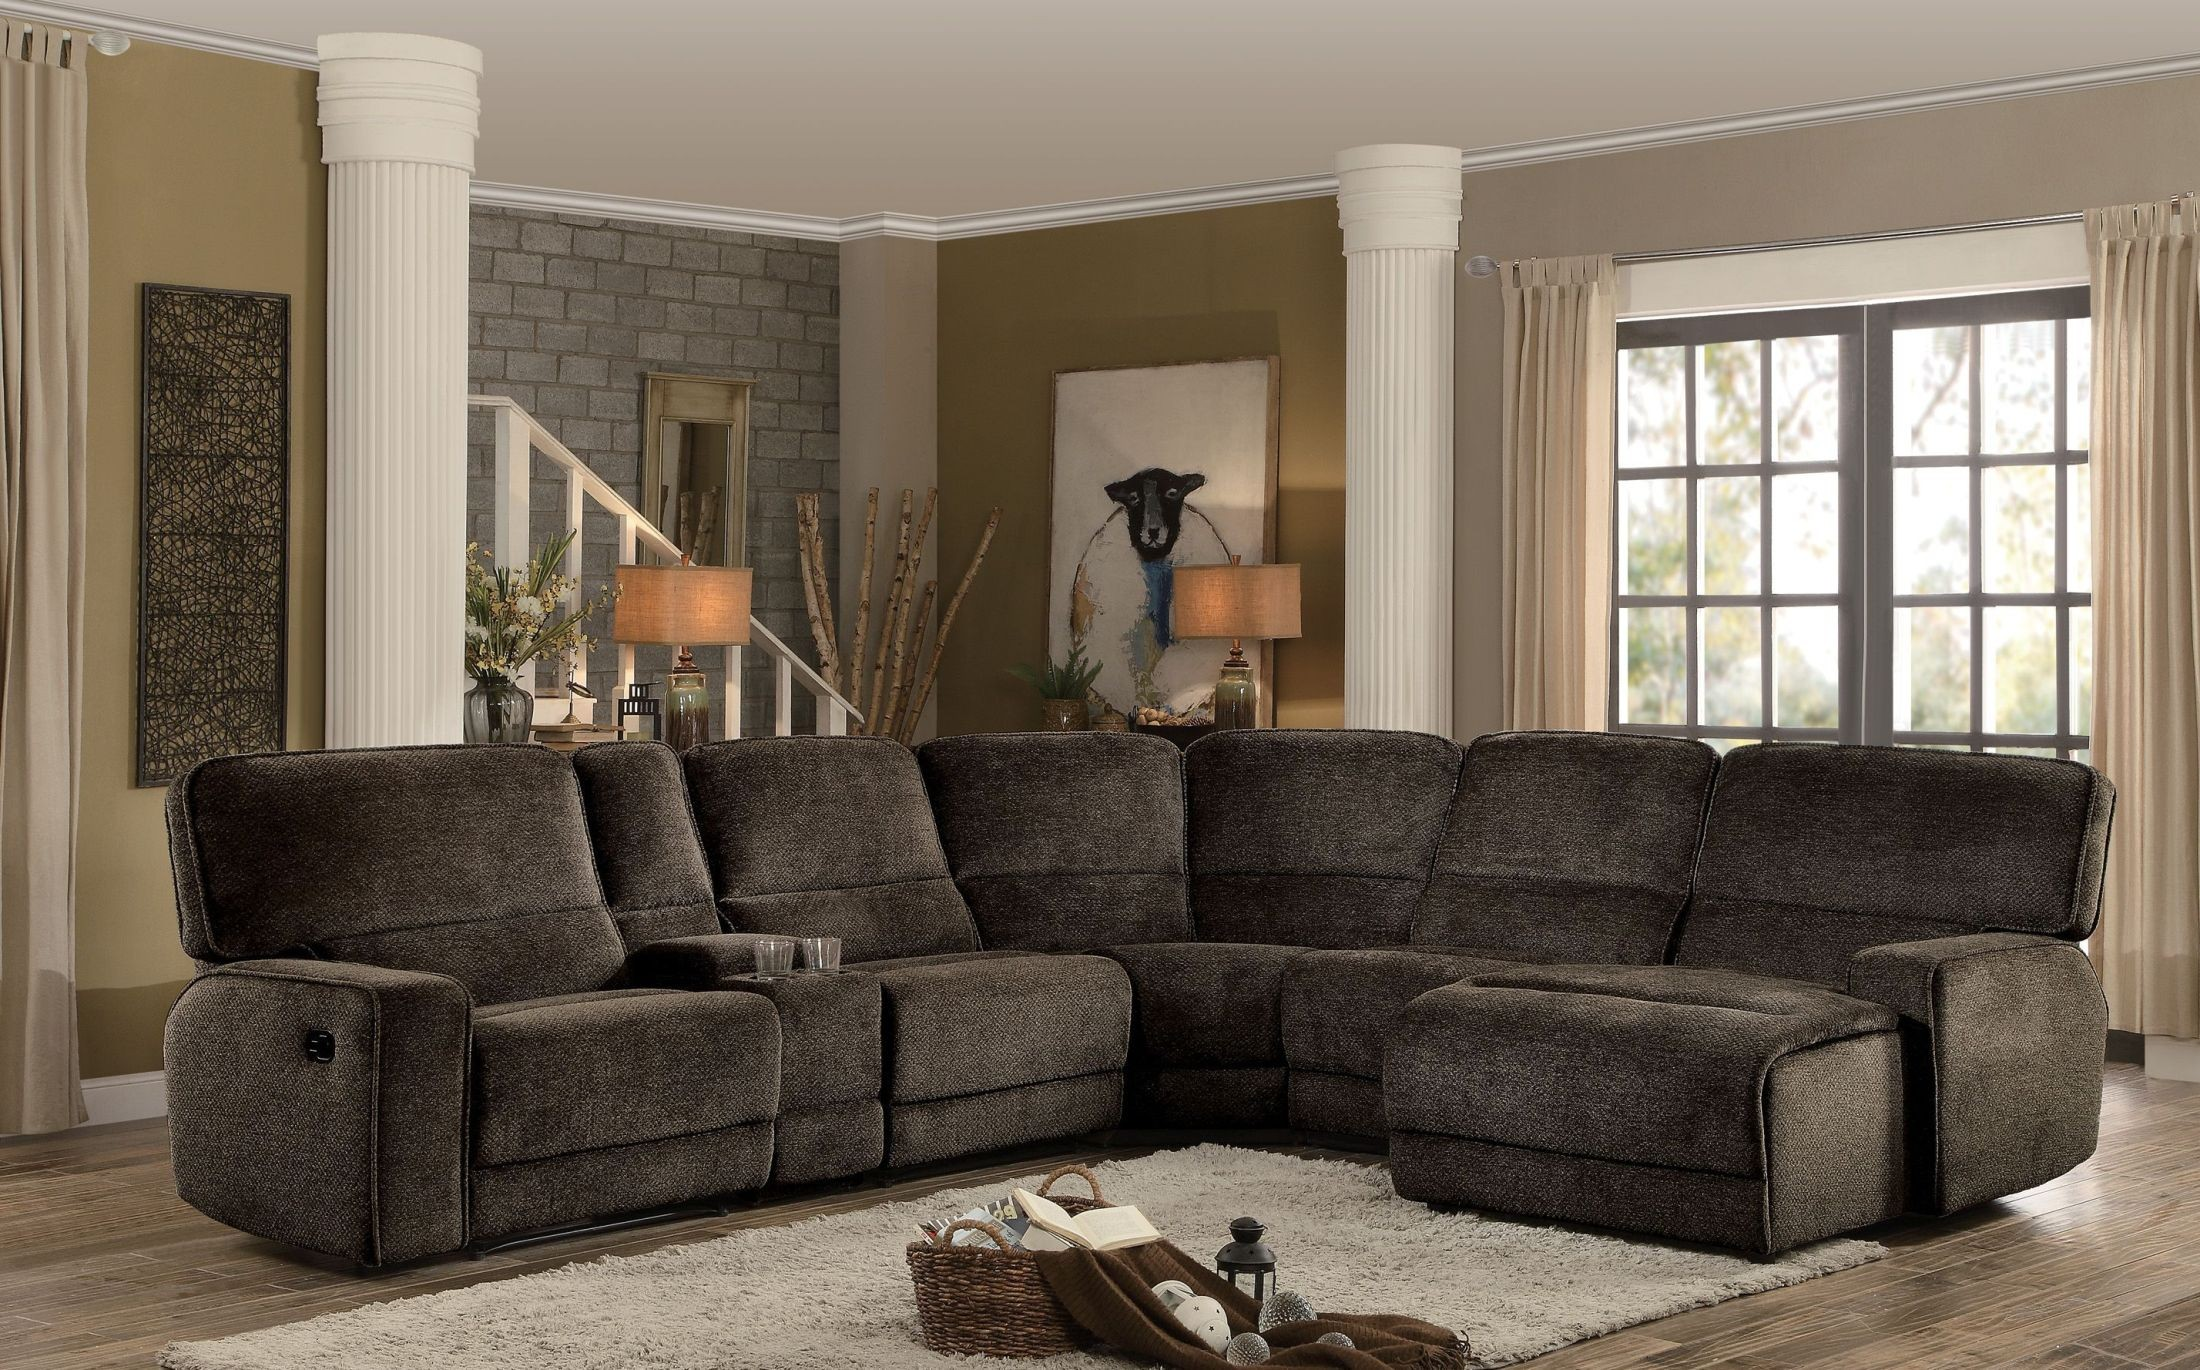 Superieur Shreveport Brown Reclining Sectional From Homelegance | Coleman Furniture